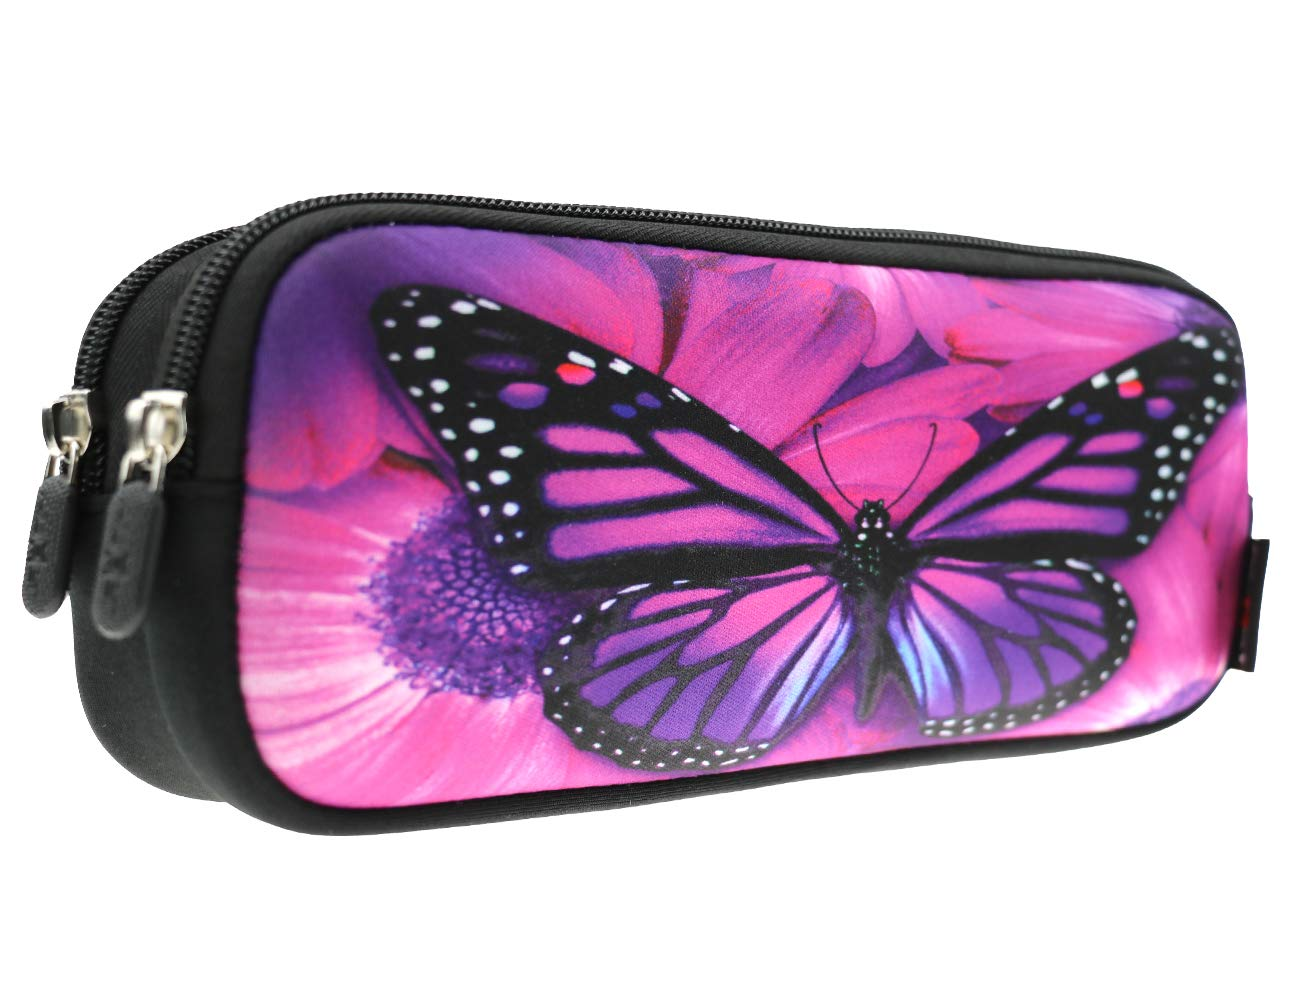 AUPET Pencil Case, Large Capacity Pencil Bag with Two Compartments Durable Zipper Students Stationery Pen Bag for Pens, Pencils, Markers, Eraser and Other School Supplies (Purple Big Butterfly)